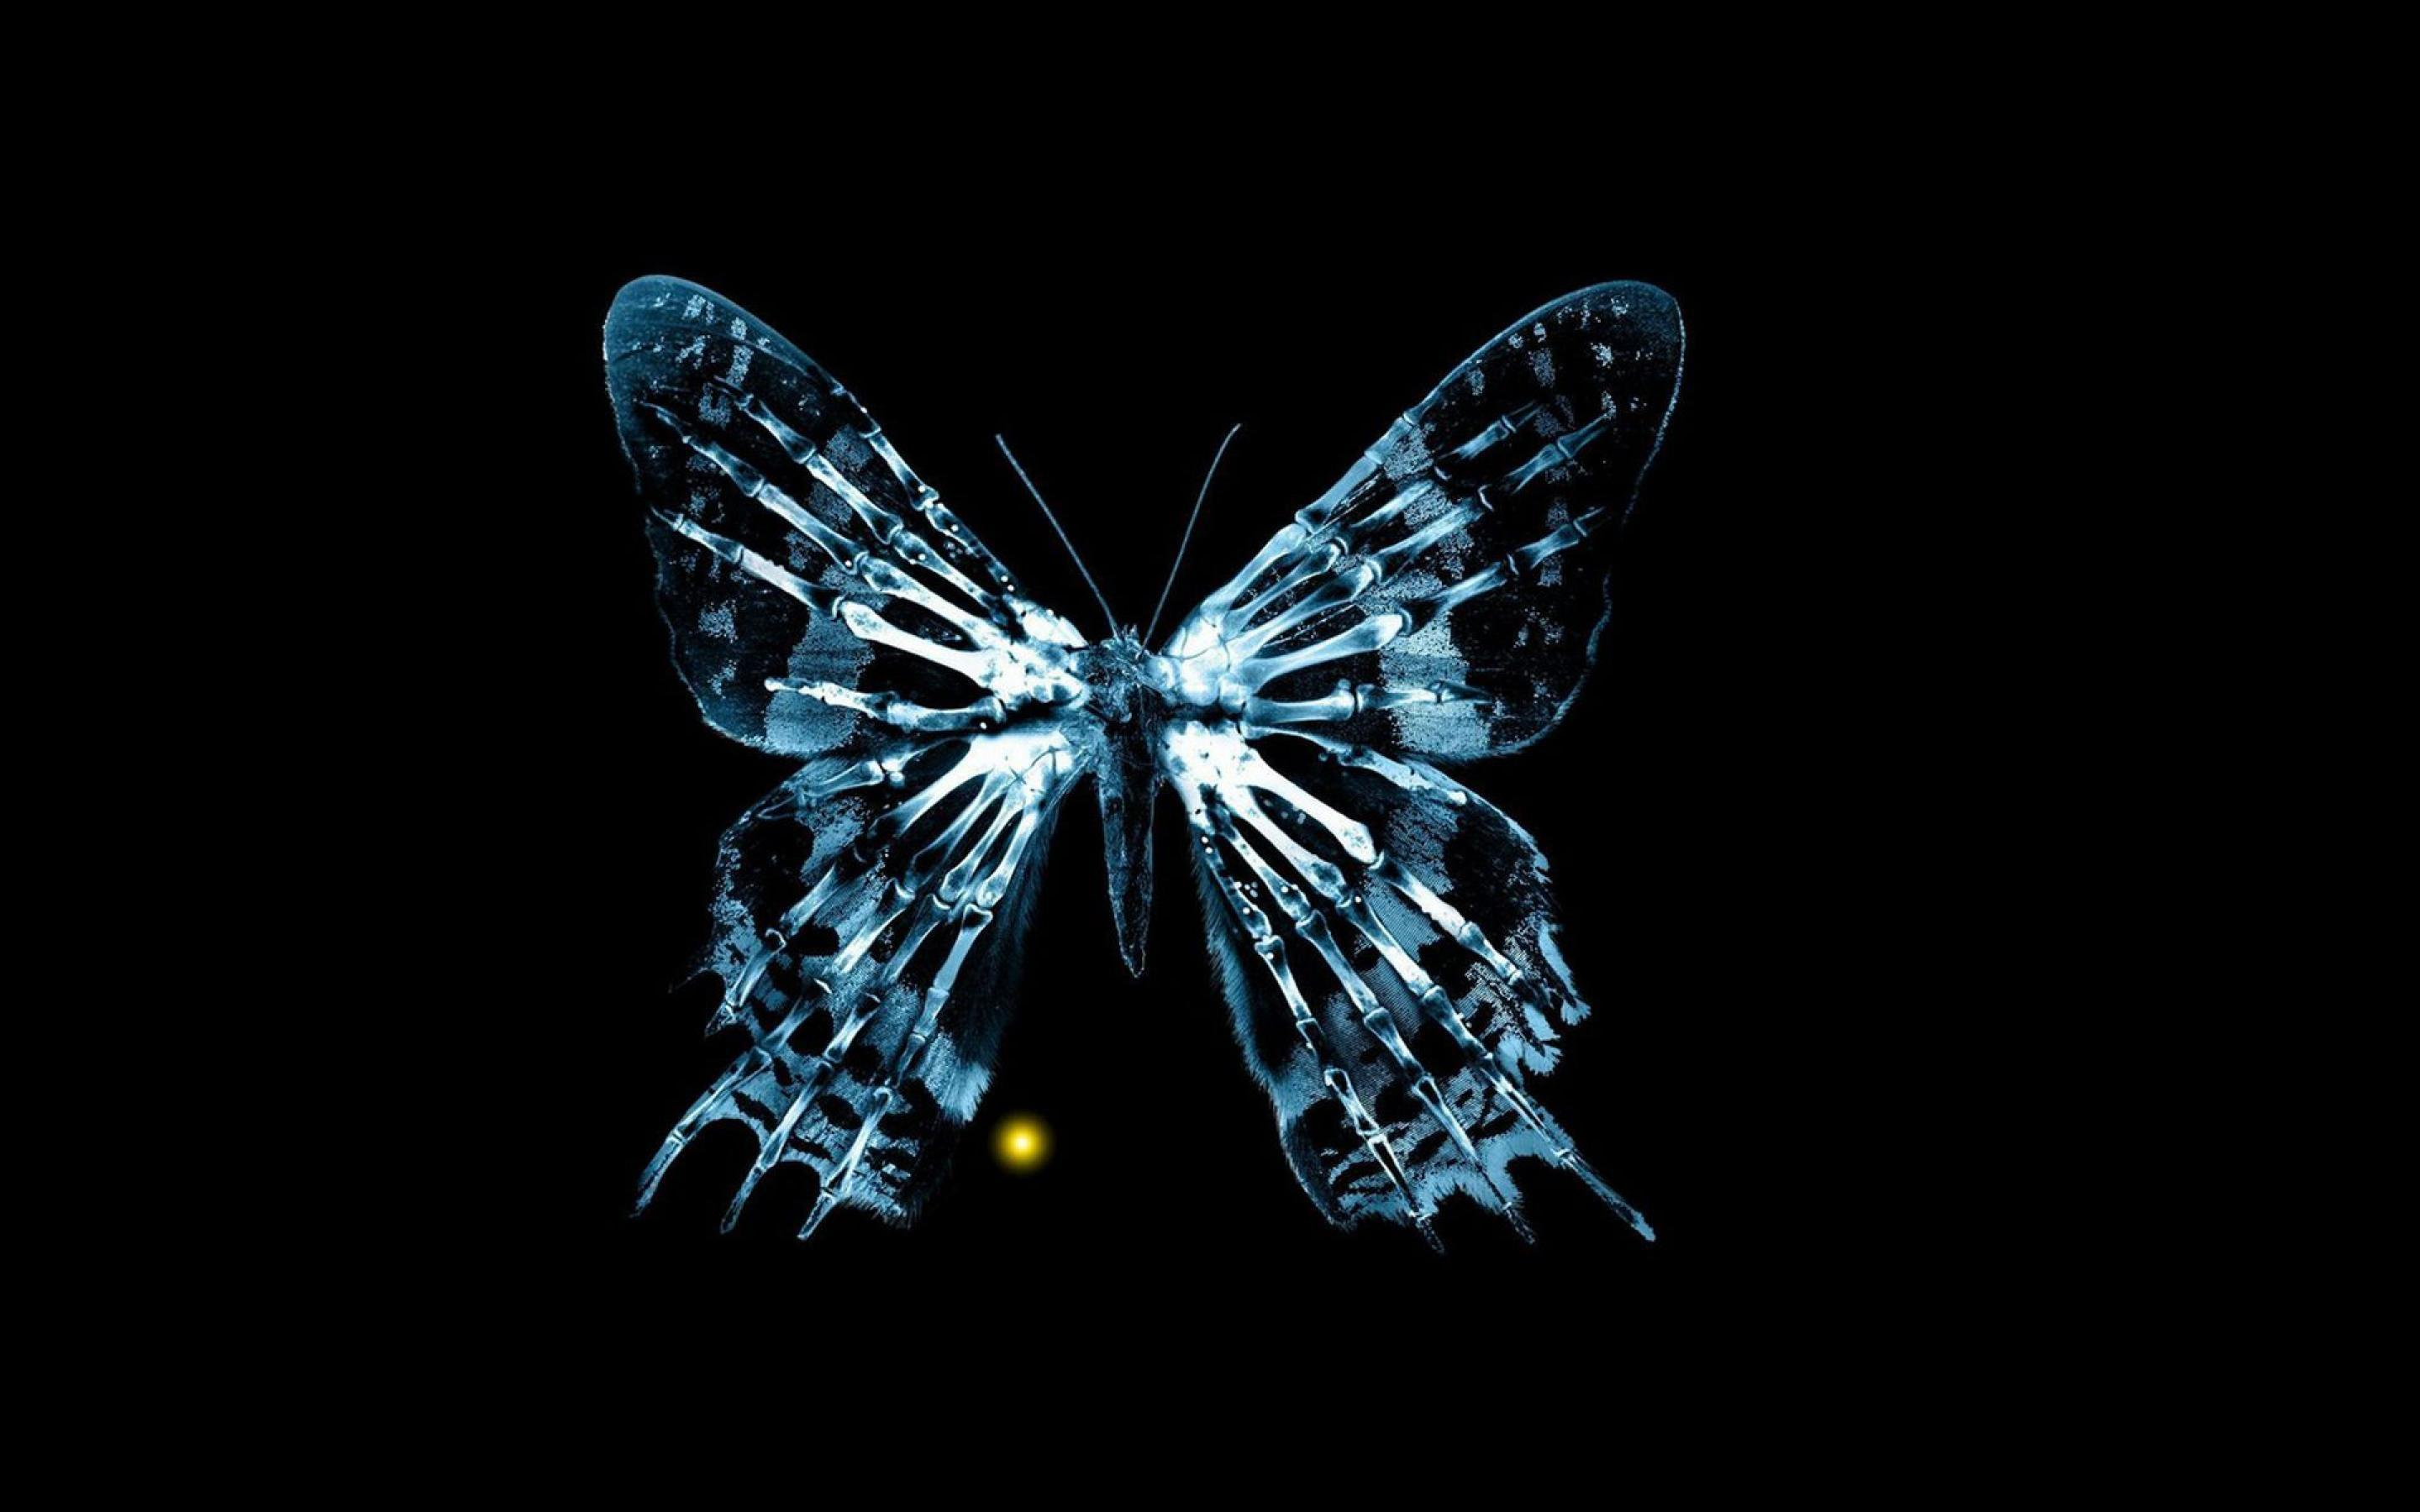 Cool Butterfly Wallpapers 2880x1800